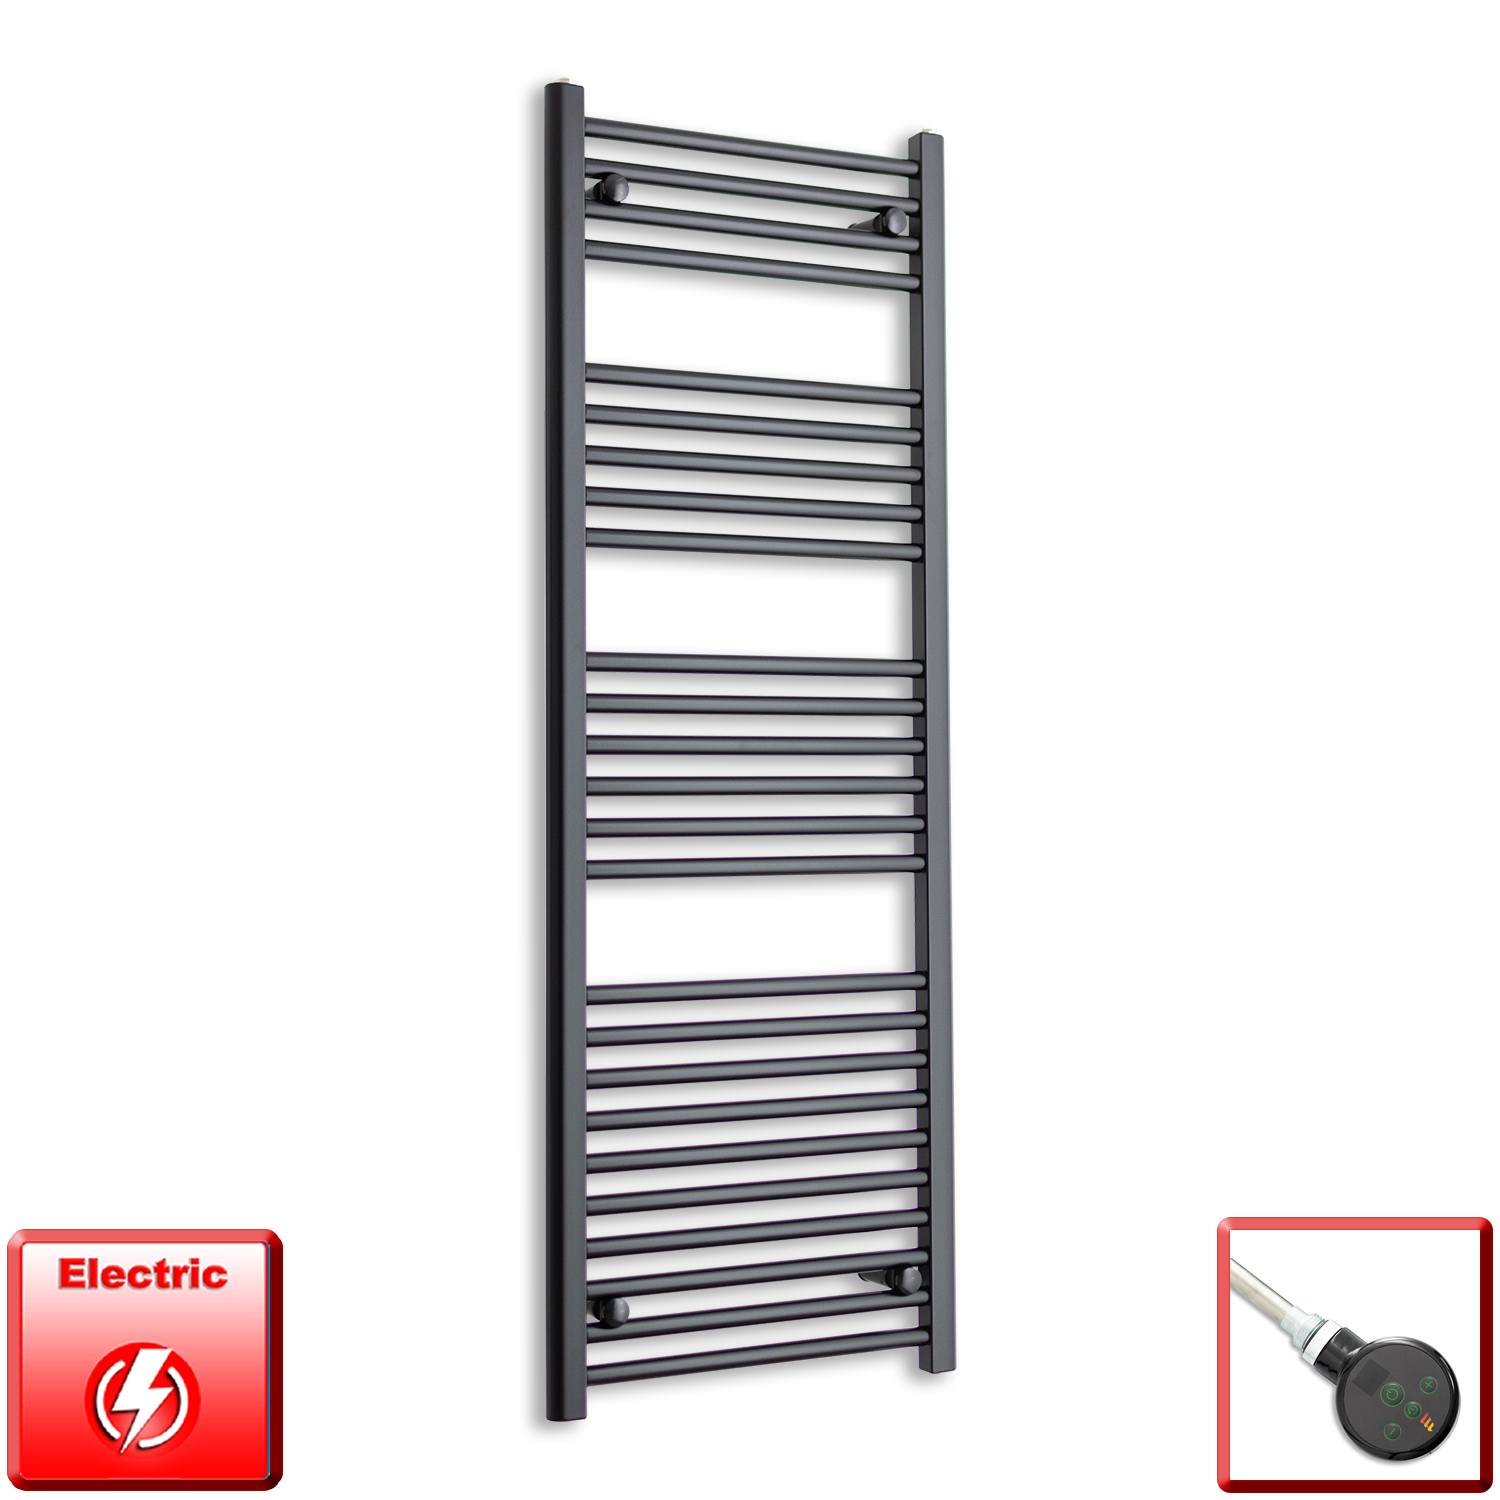 600mm Wide 1400mm High Pre-Filled Black Electric Towel Rail Radiator With Thermostatic MEG Element450mm Wide 1400mm High Pre-Filled Black Electric Towel Rail Radiator With Thermostatic DIGI Element